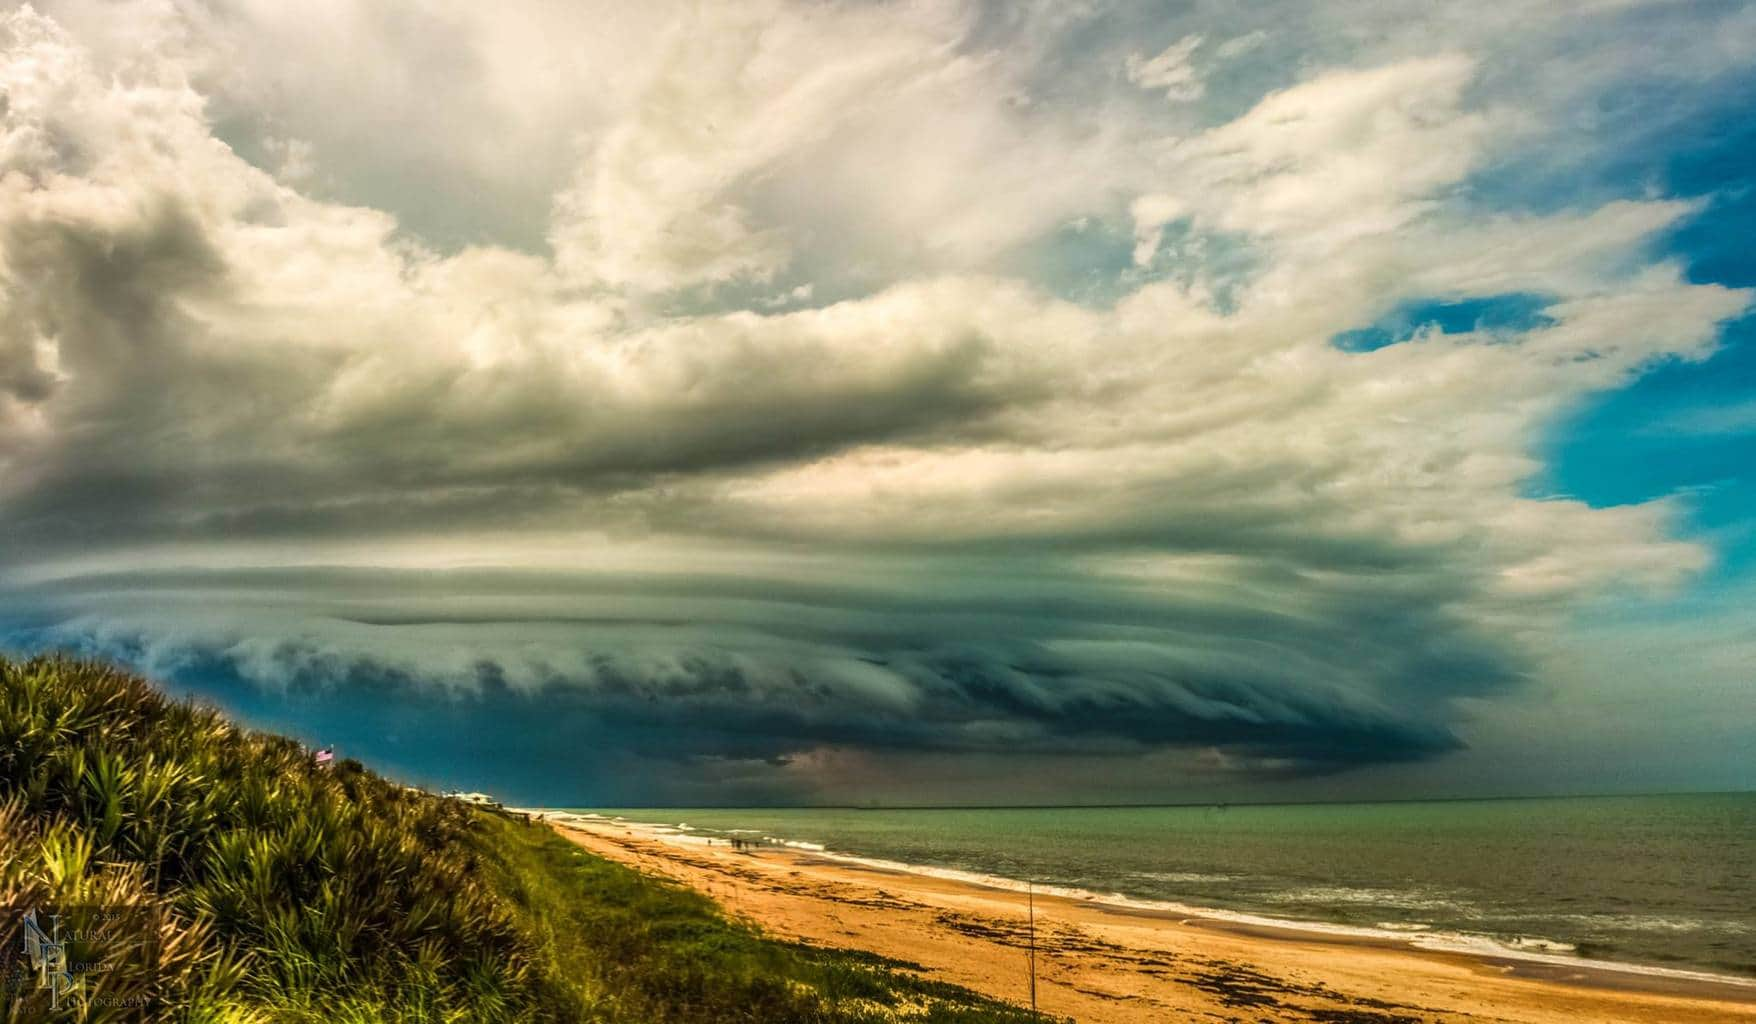 """"""" The Beast """" Flagler Beach, FL 6/25/15 One of the most photogenic shelf clouds I have ever seen. I took many shots of this beast but this 1 seemed to pop out more both in color and structure. Enjoy"""